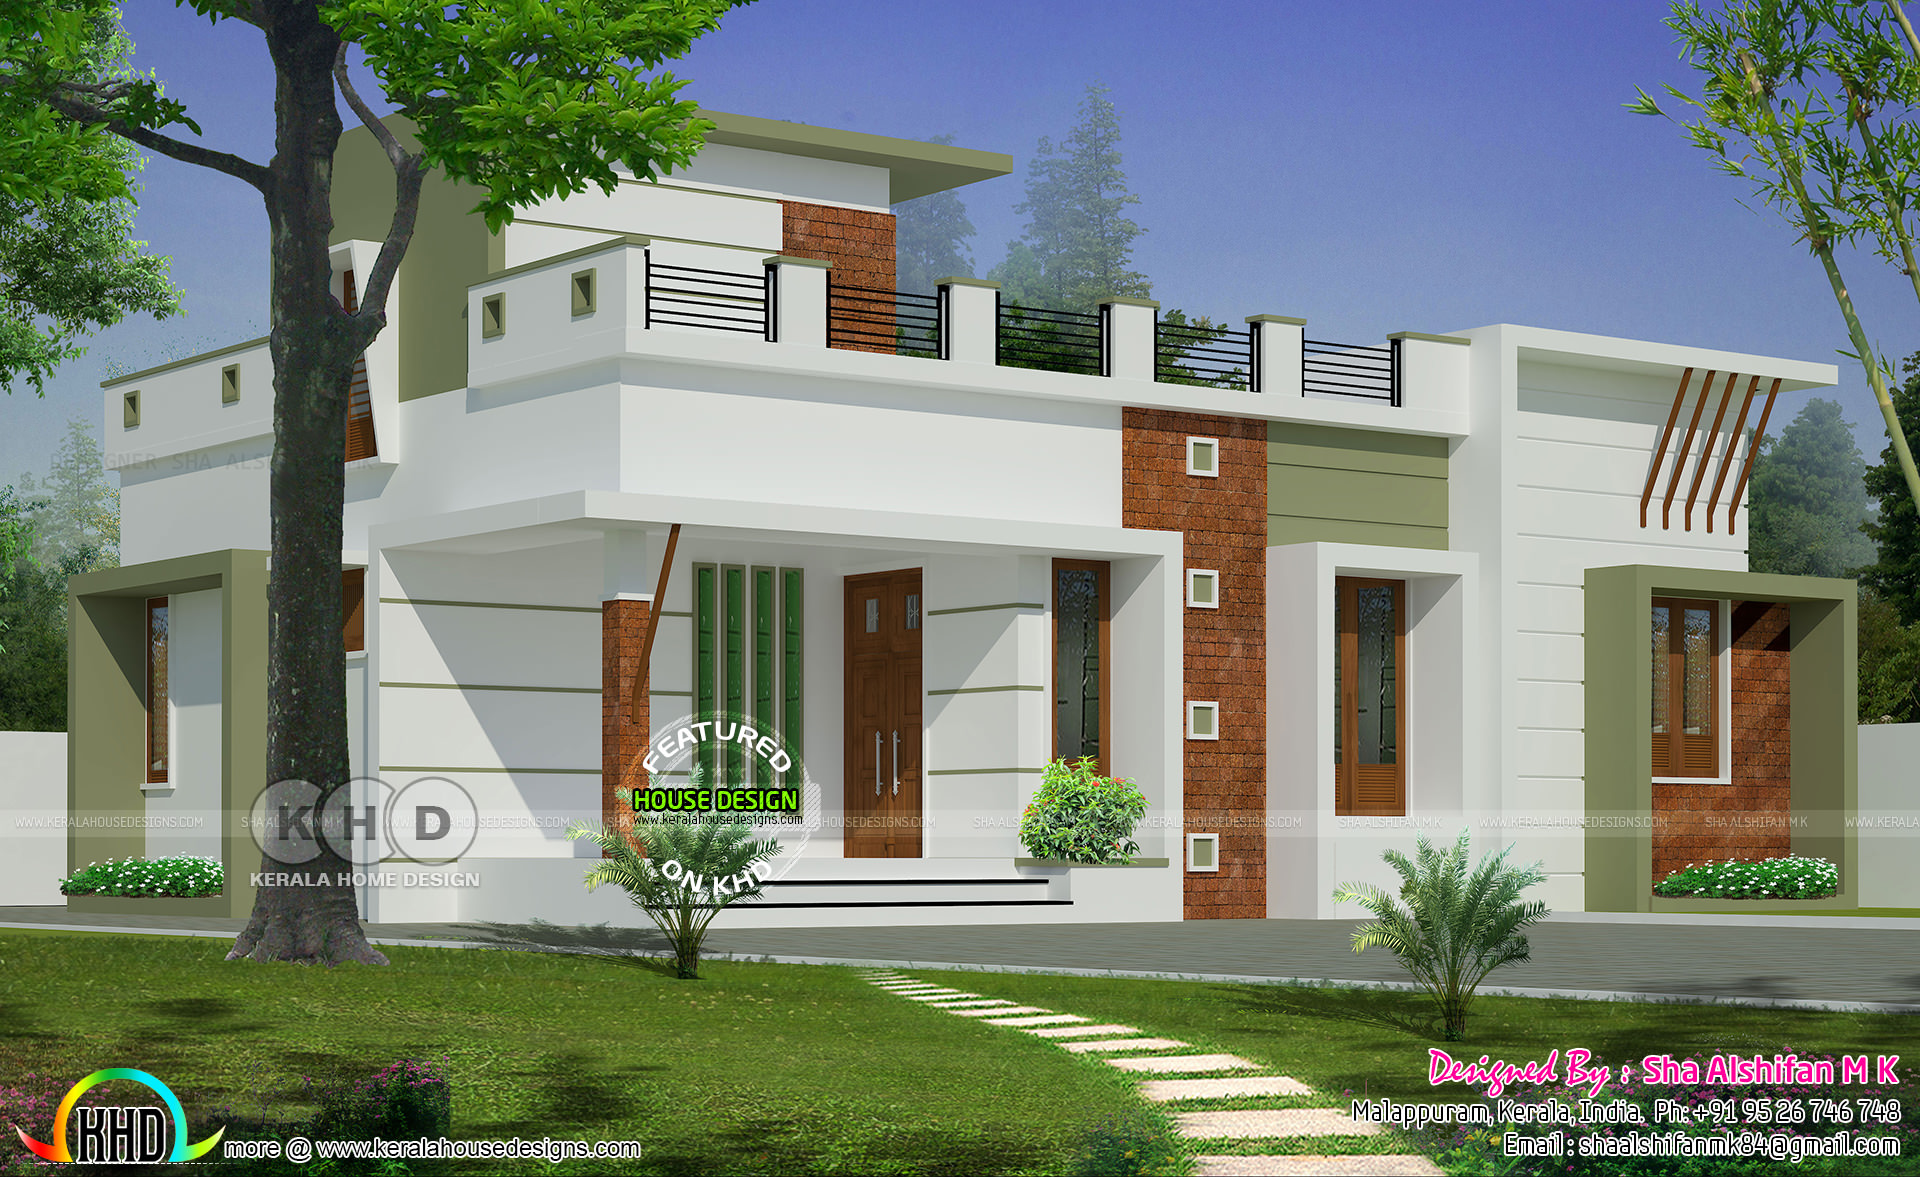 983 Sqfeet 2 Bedroom One Floor Home Kerala Home Design